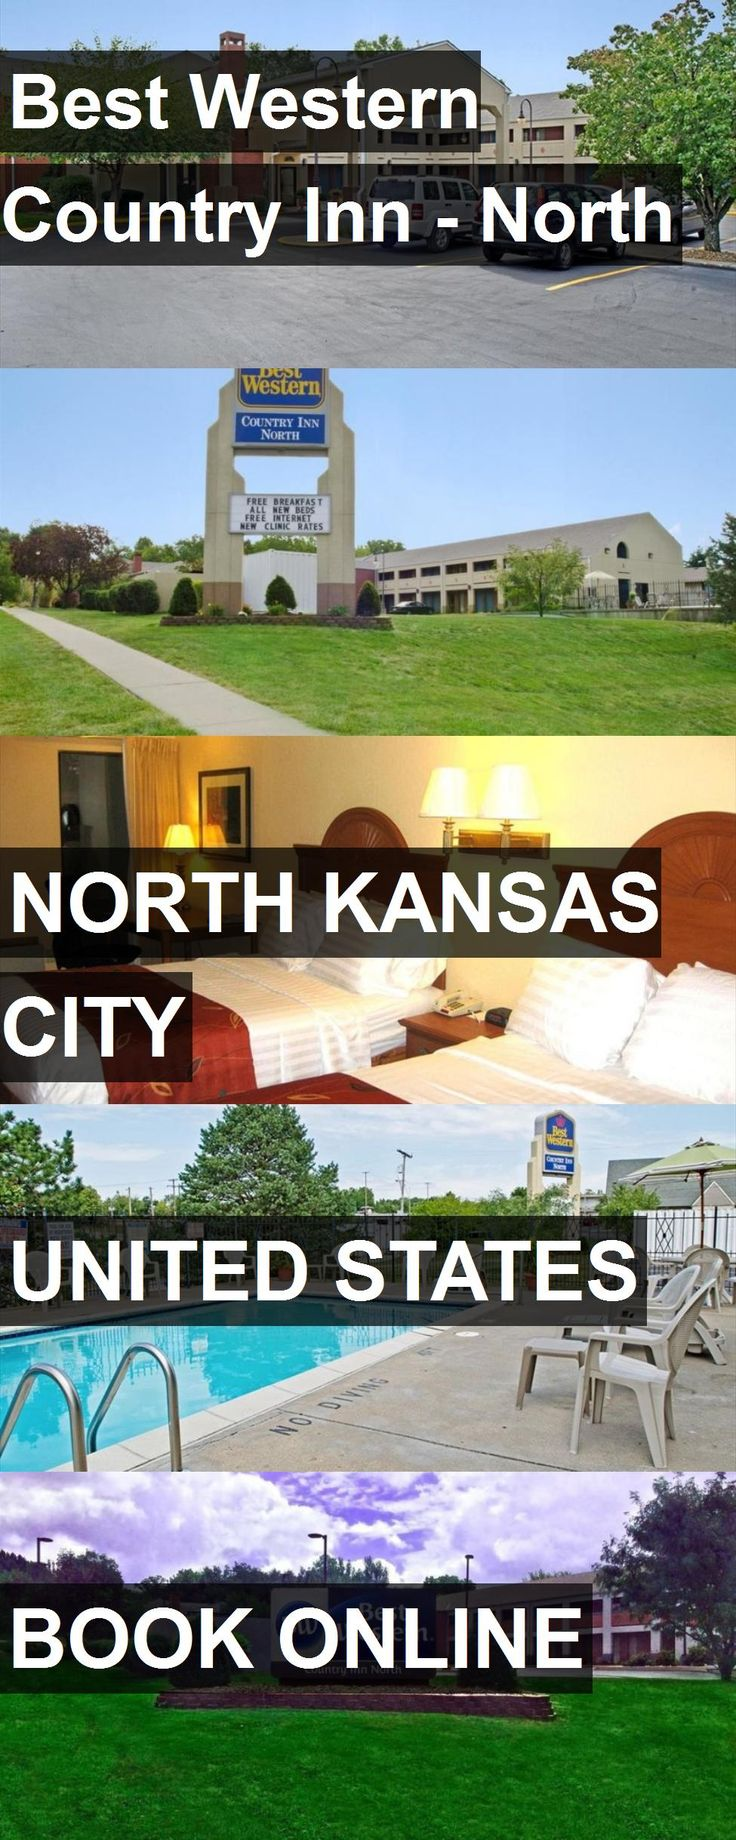 Hotel Best Western Country Inn - North in North Kansas City, United States. For more information, photos, reviews and best prices please follow the link. #UnitedStates #NorthKansasCity #travel #vacation #hotel